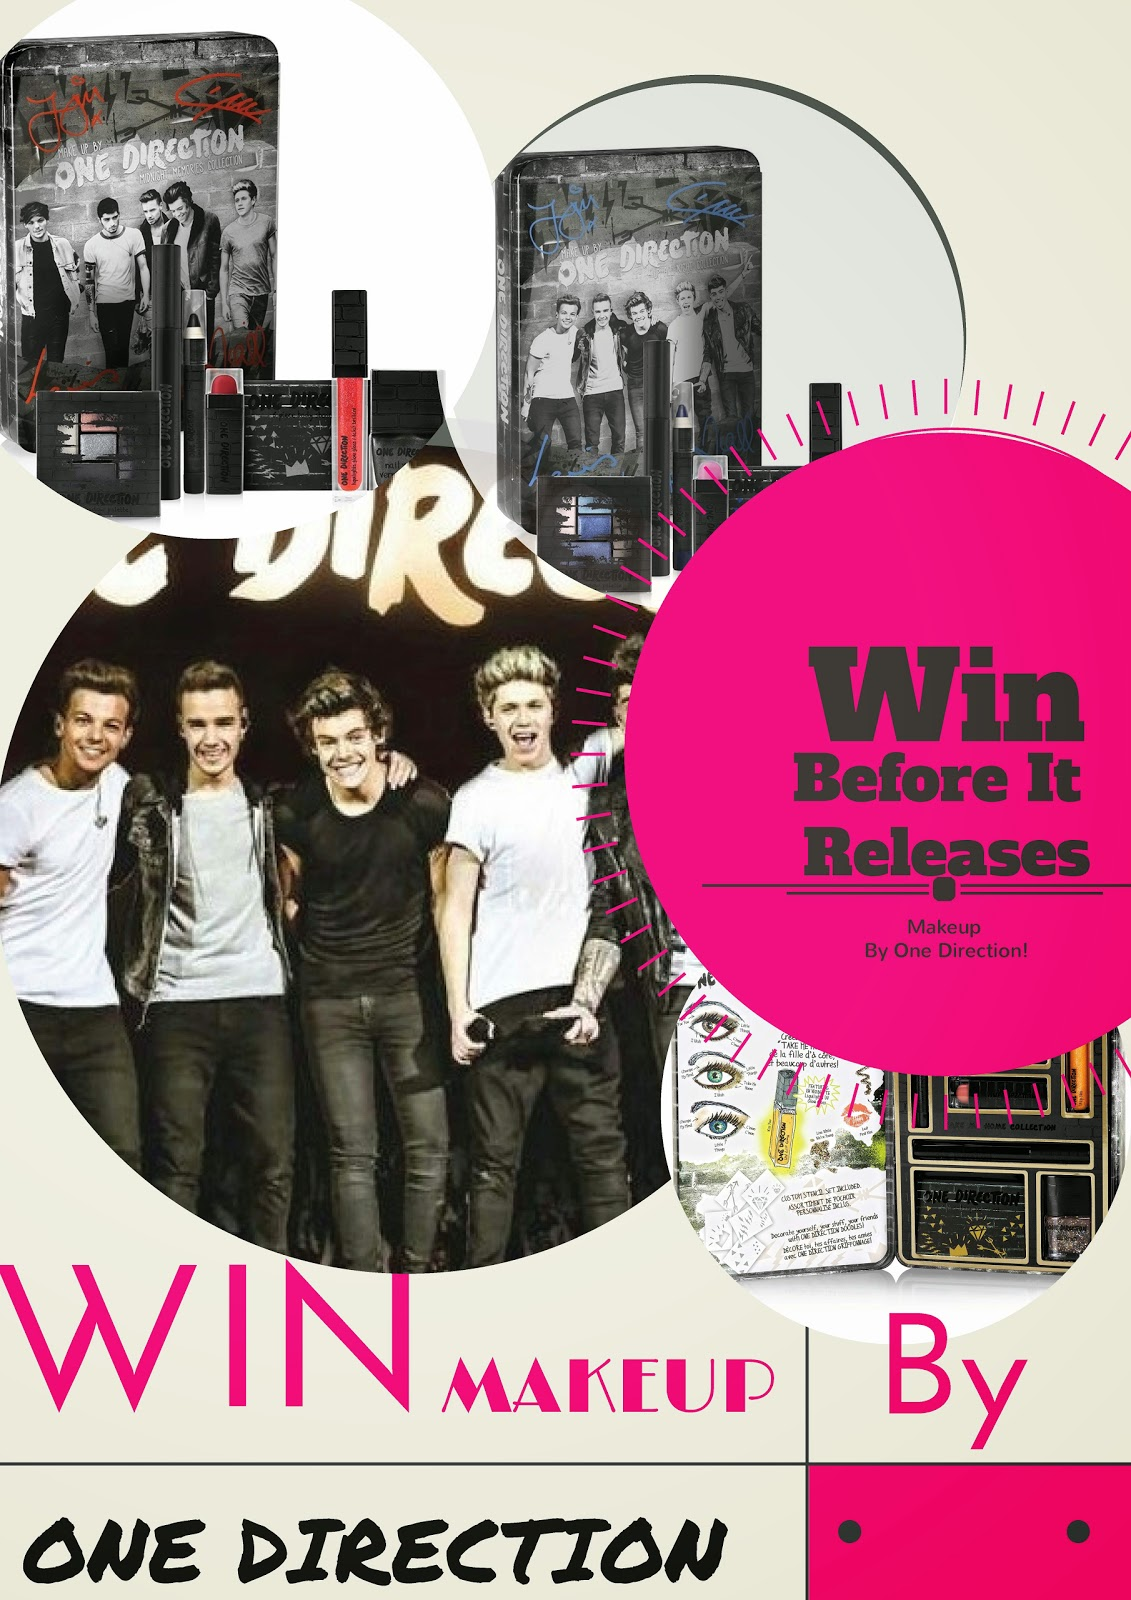 One Direction's New Makeup Line Release Date & Giveaway, By Barbie's Beauty Bits